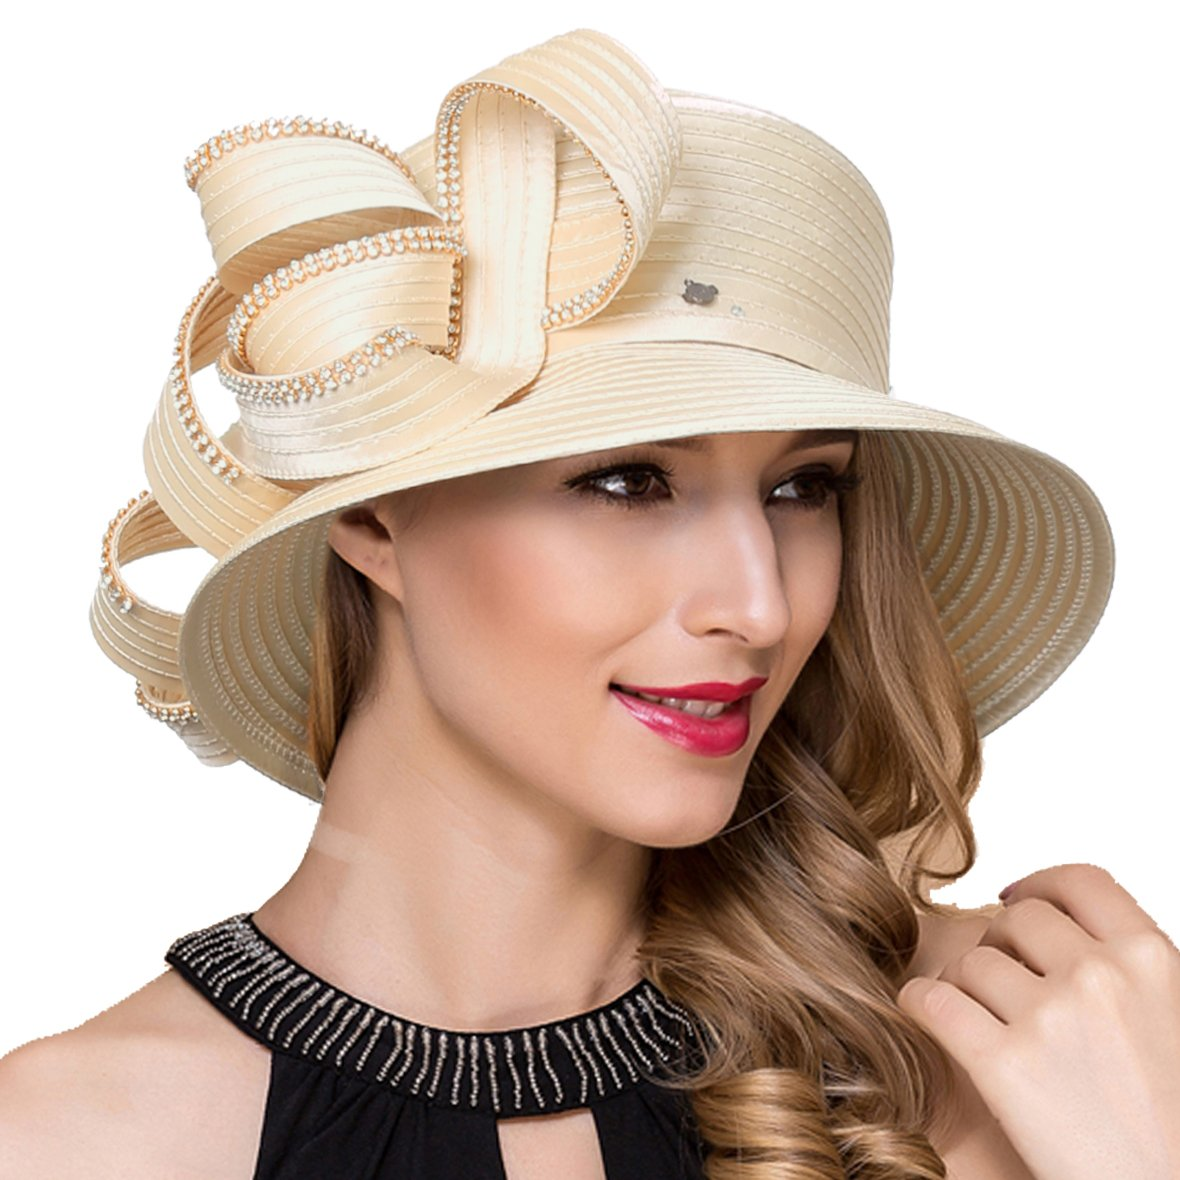 Lady Church Derby Dress Cloche Hat Fascinator Floral Tea Party Wedding Bucket Hat S051 (SD708-Apricot)